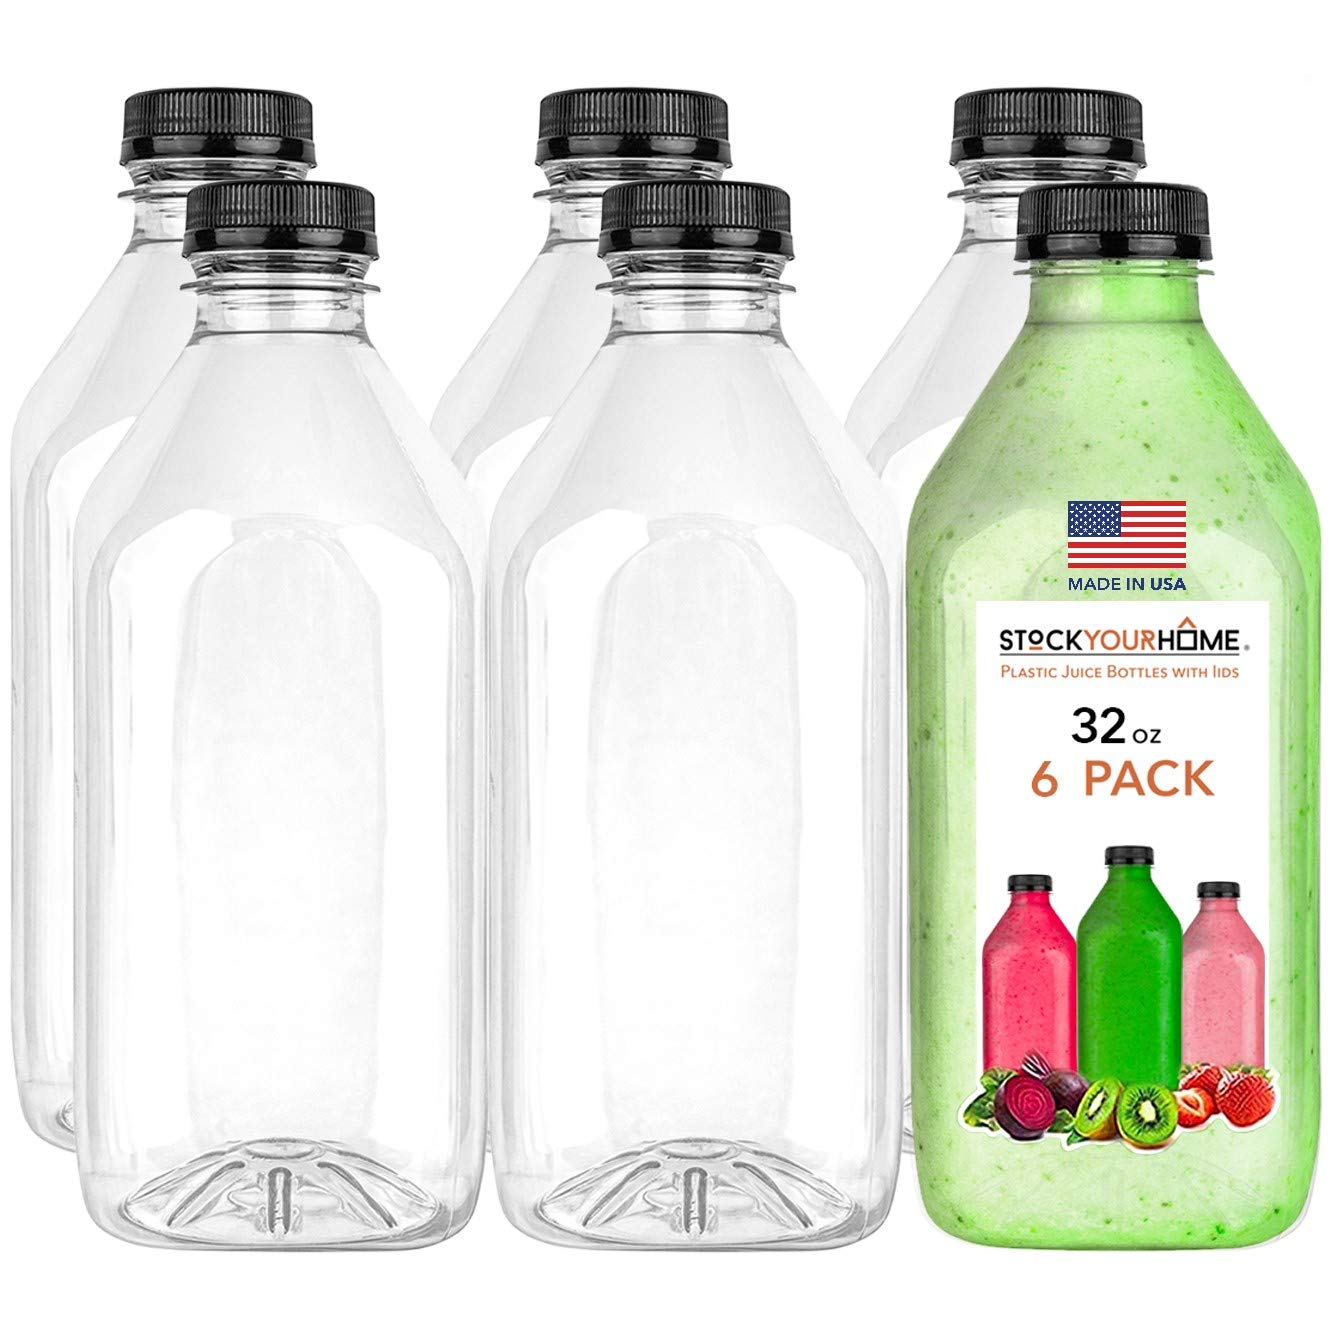 Stock Your Home Plastic Juice Bottles with Lids, Juice Drink Containers with Caps for Juicing Smoothie Drinking Cold Beverages, 32 Oz Bottle, 6 Count